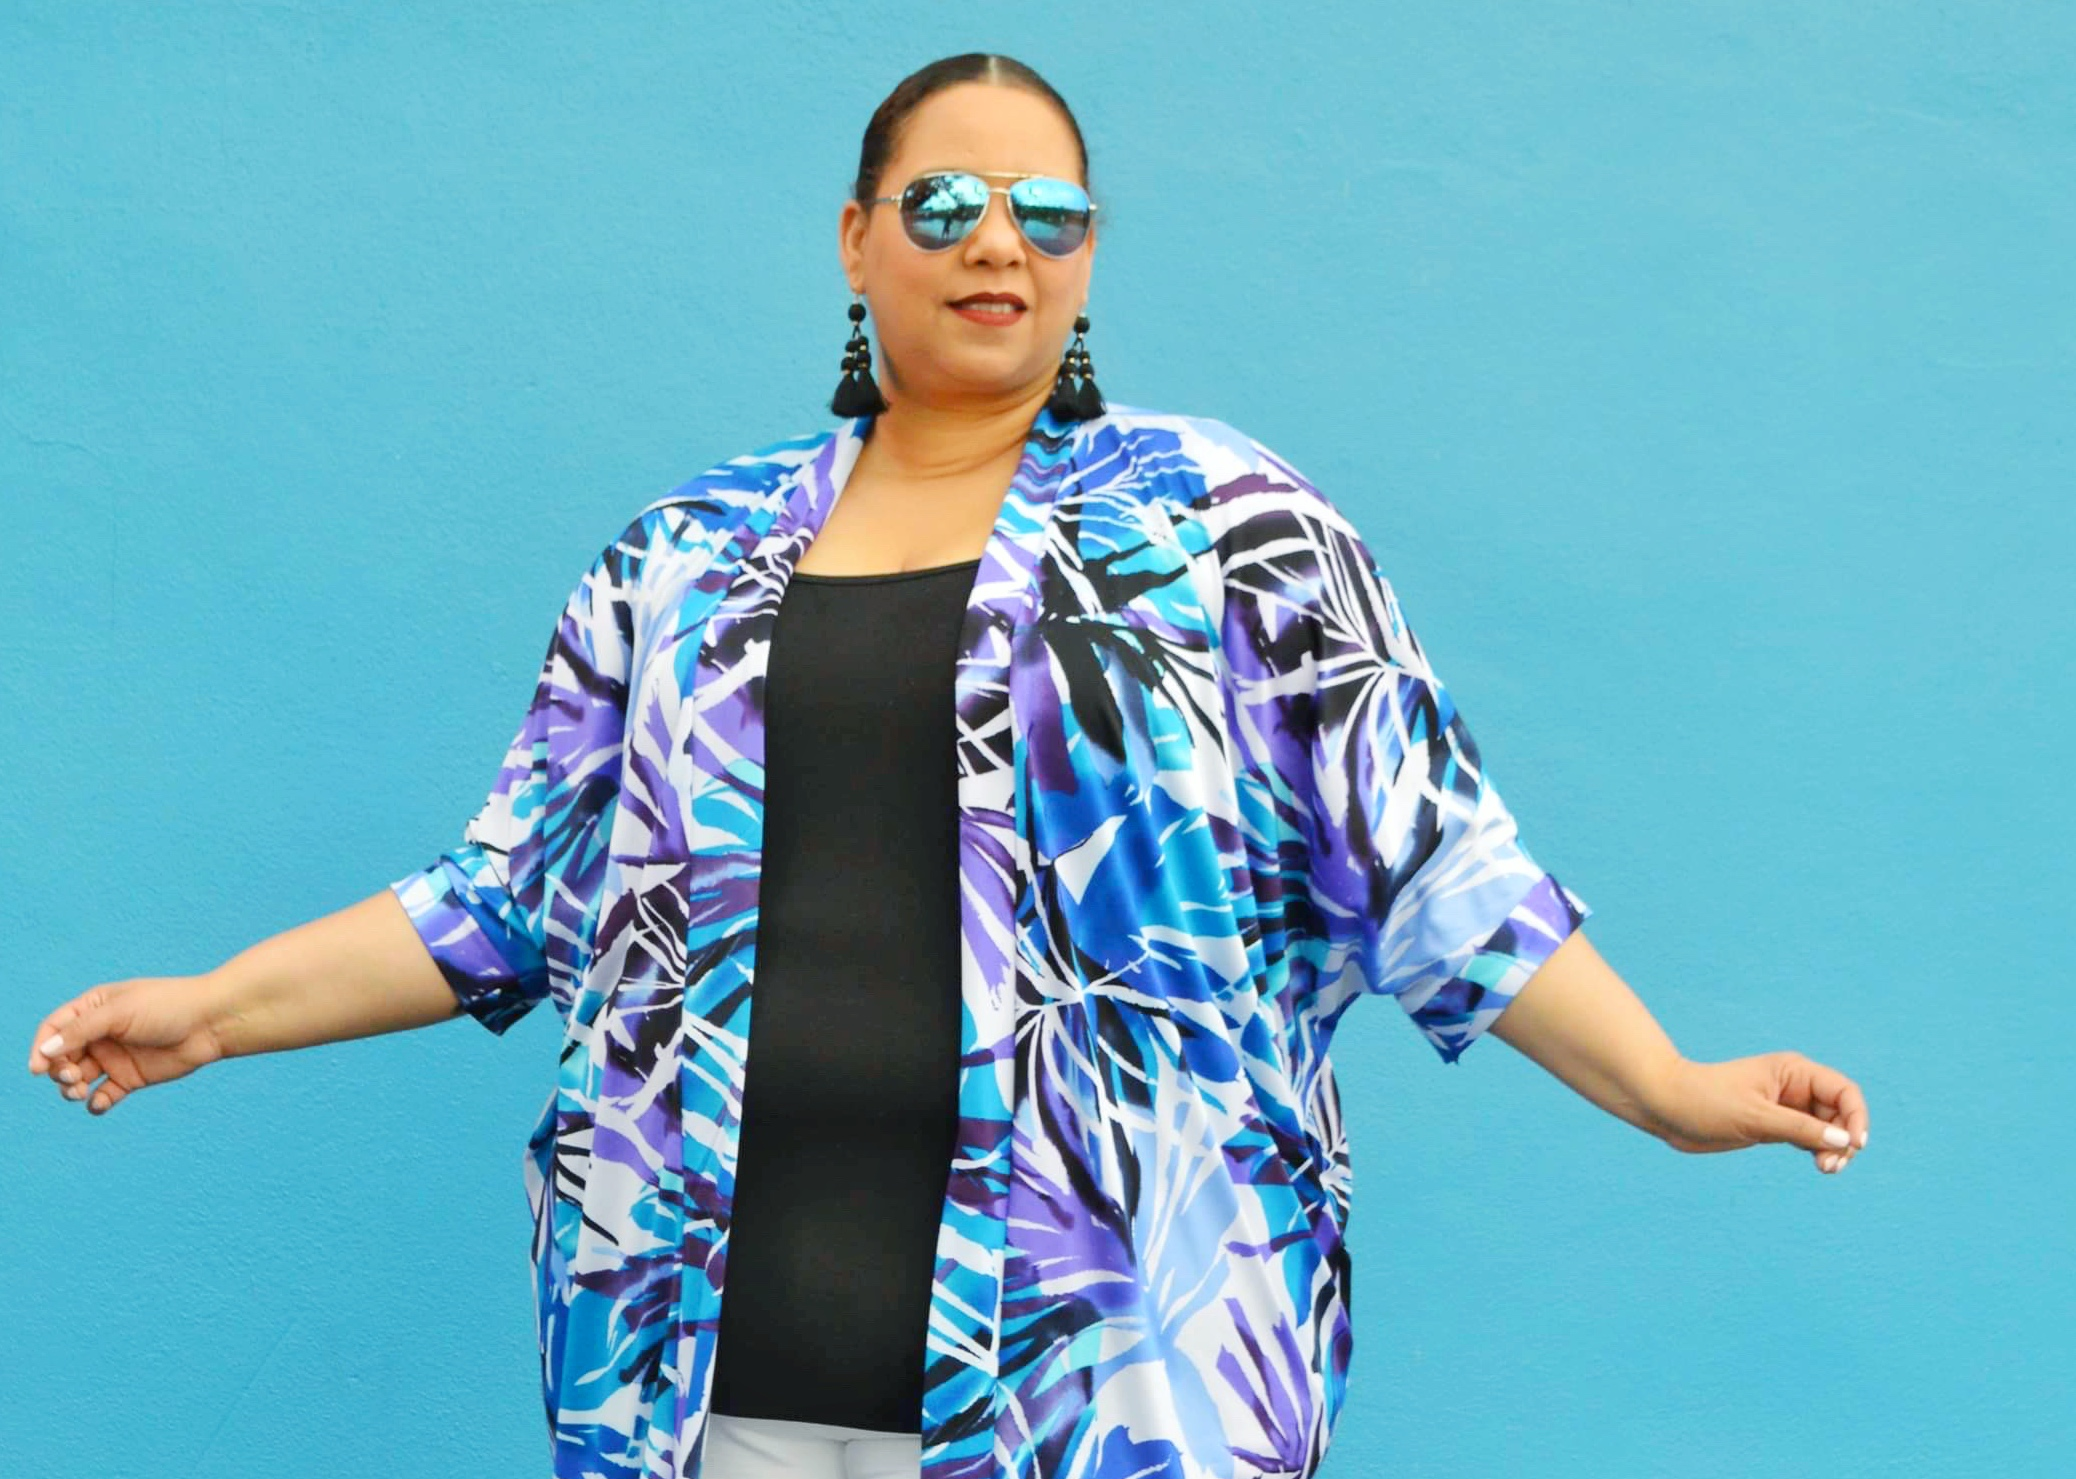 fashion blogger farrah estrella wearing a custom kimono by Designer Steffany Allen